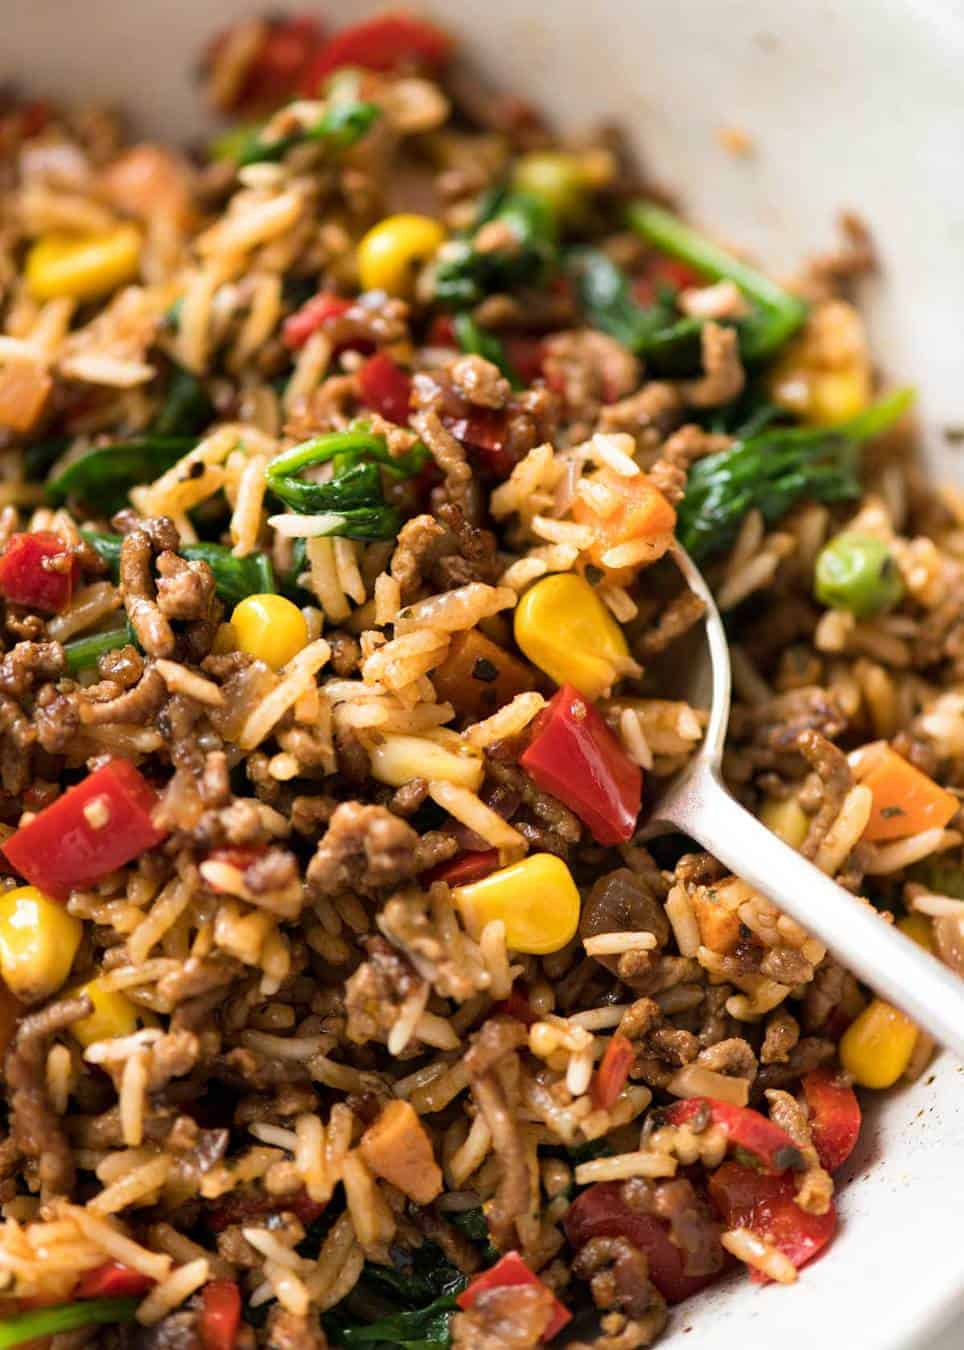 Ritzy Rice Rice Recipes Skillet A Midweek Meal This Ground Beef Veggies Recipetin Eats Ground Beef Rice Is Made Bybrowning Beef nice food Ground Beef And Rice Recipes Skillet